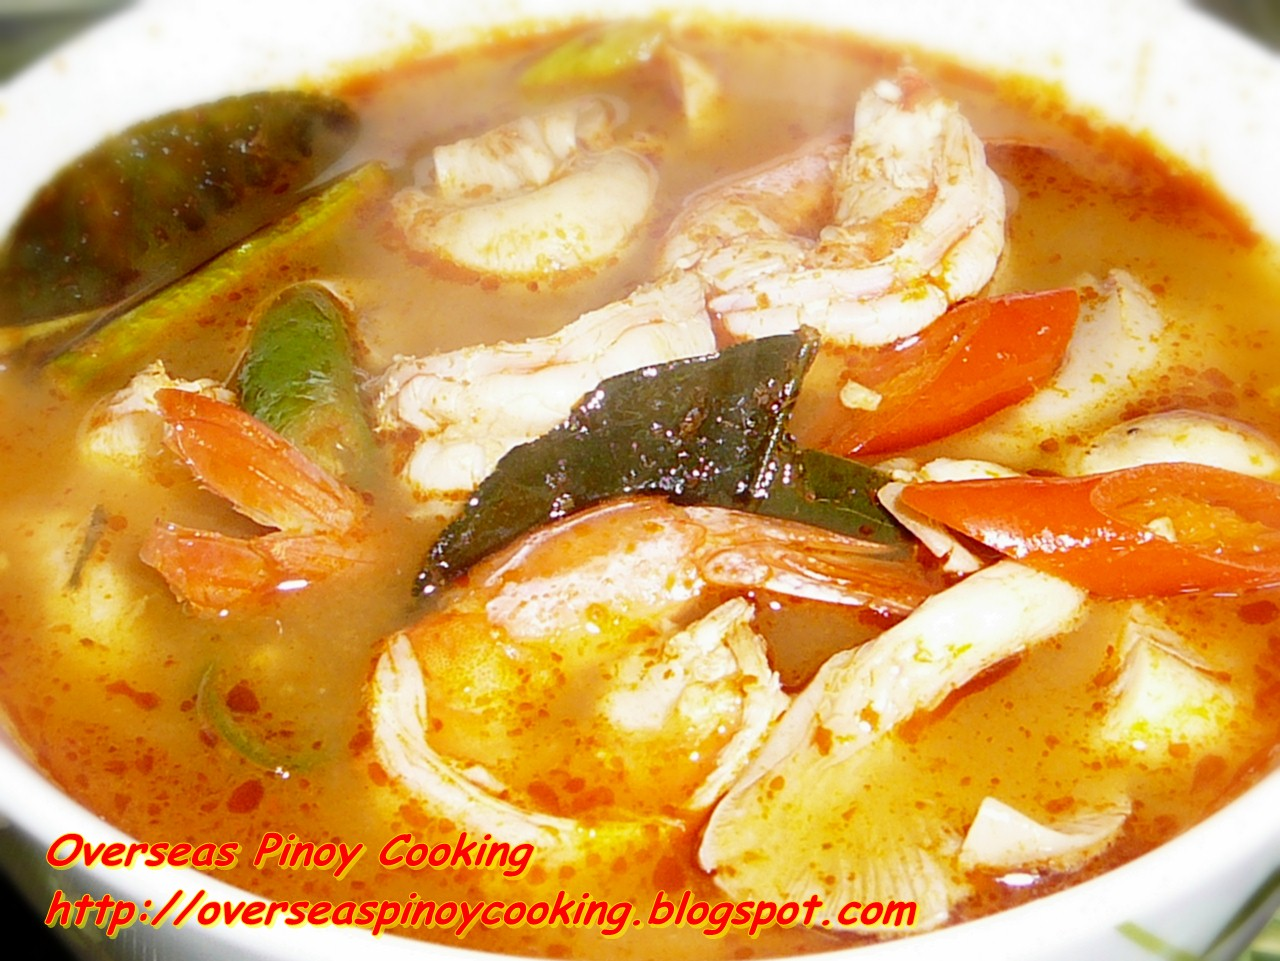 Tom Yum Goong, Hot and Sour Shrimp or Prawn Soup